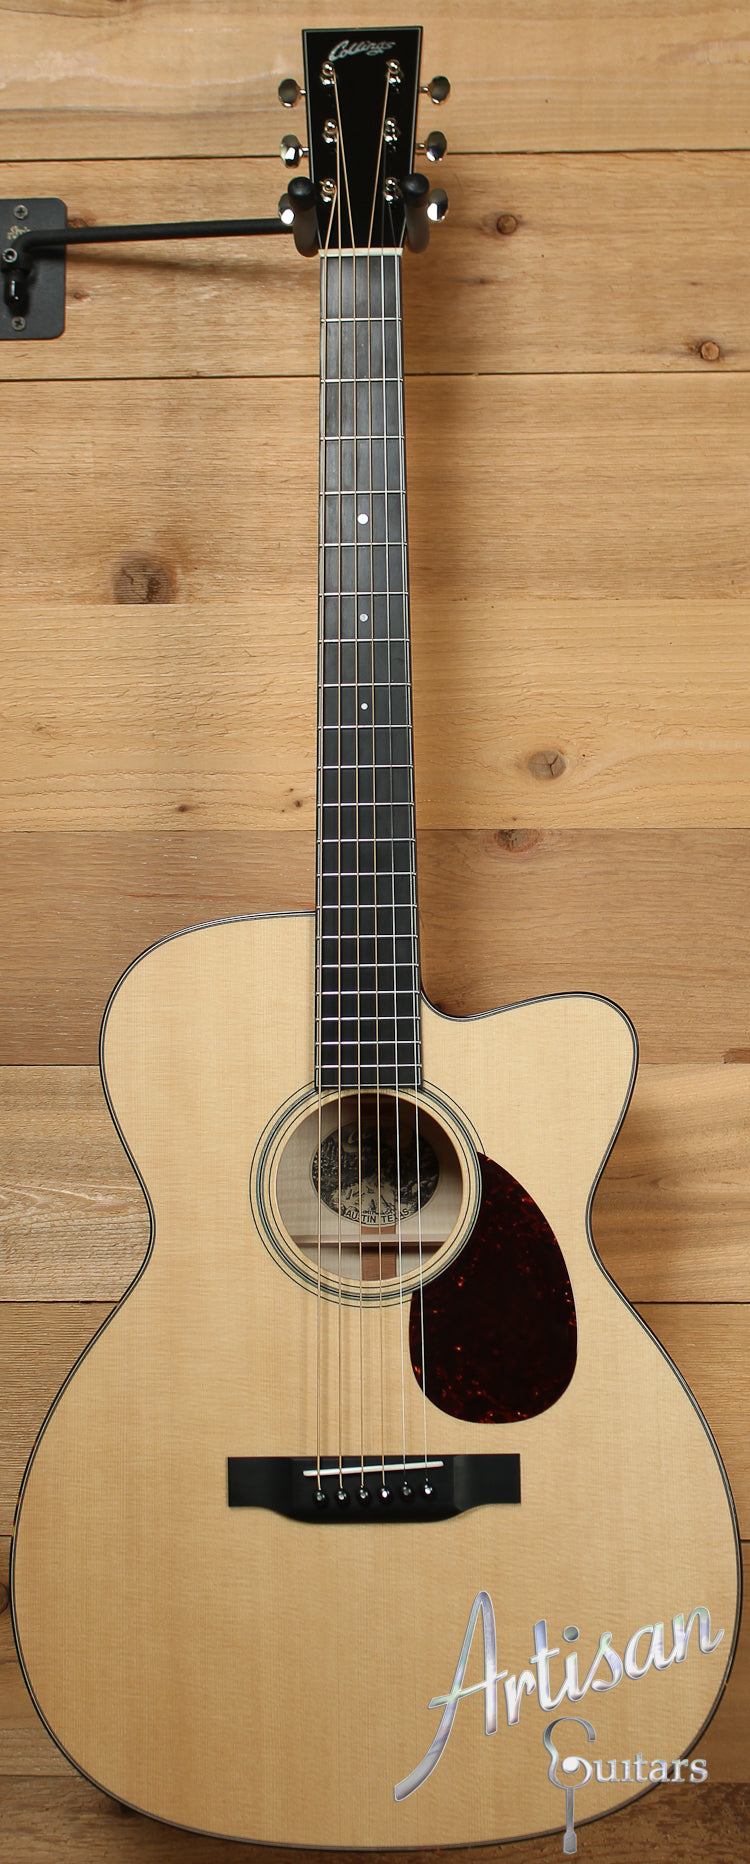 Collings OM1 Maple Cut Sitka Spruce and Maple with Cutaway ID-7669